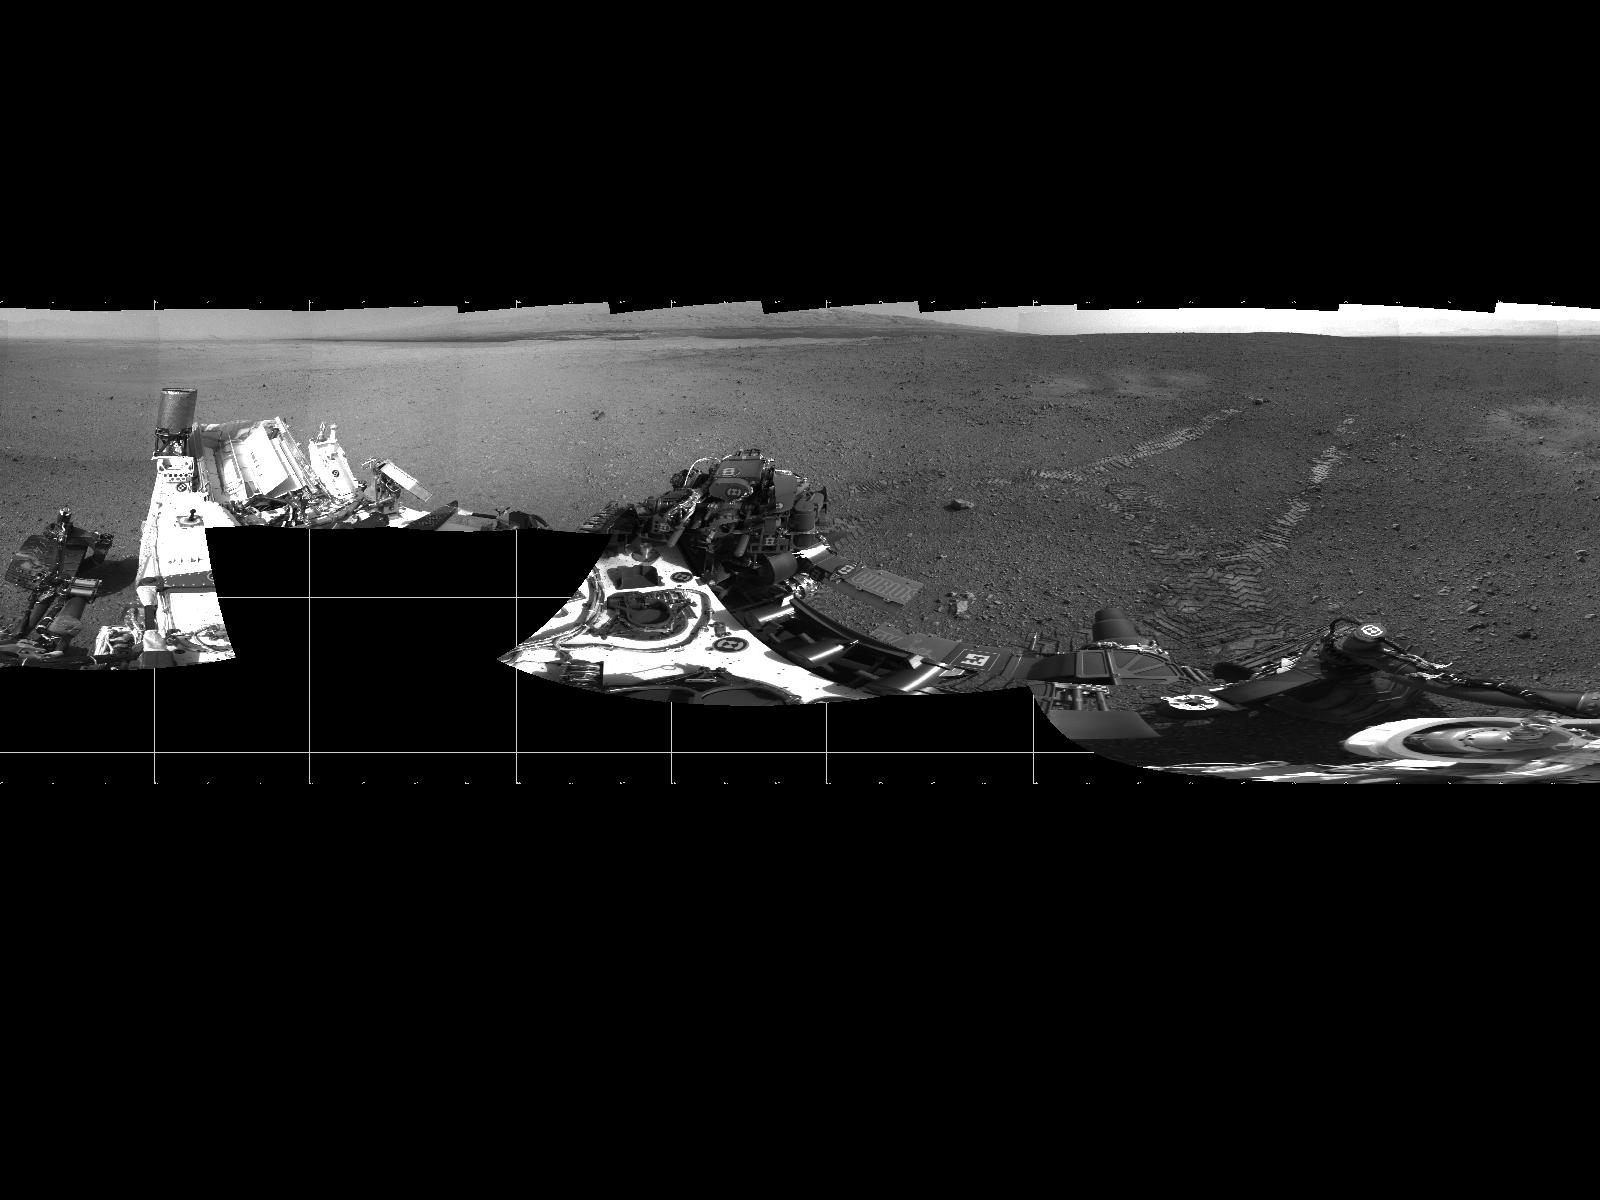 Mars Rover Tracks Akin to Neil Armstrong's Moon Bootprints, Scientist Says